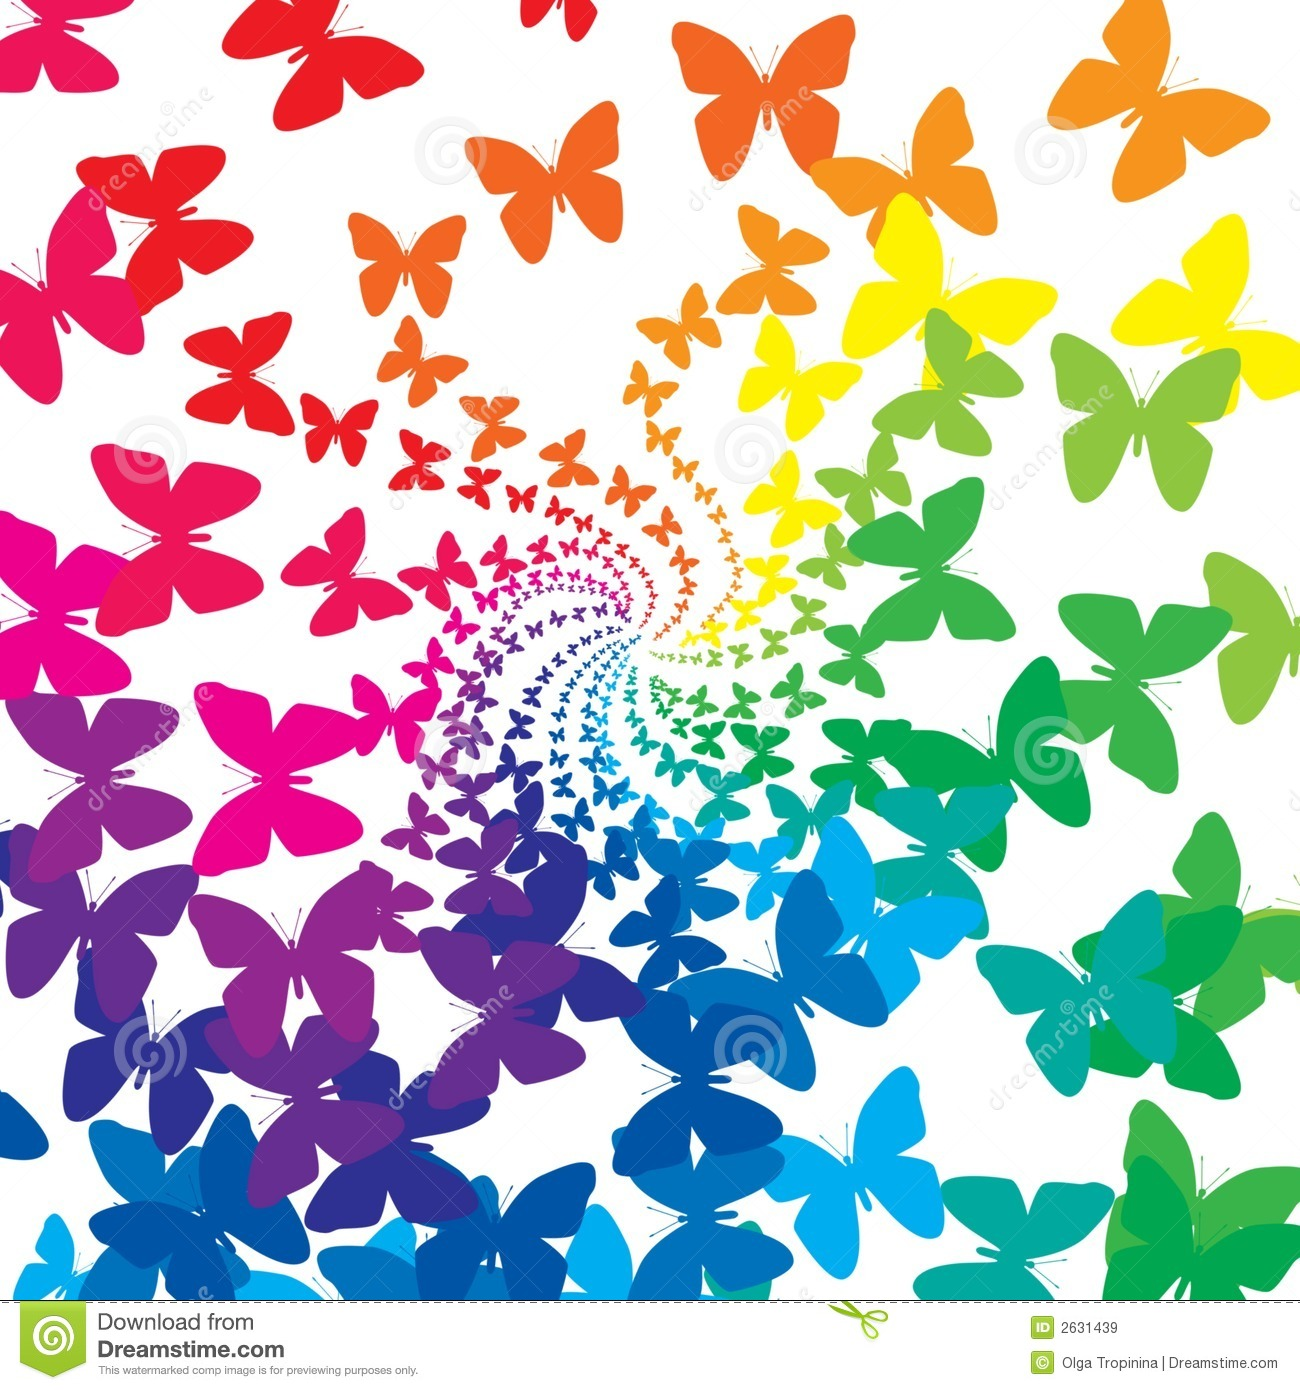 Rainbow Butterflies Royalty Free Stock Images - Image: 2631439